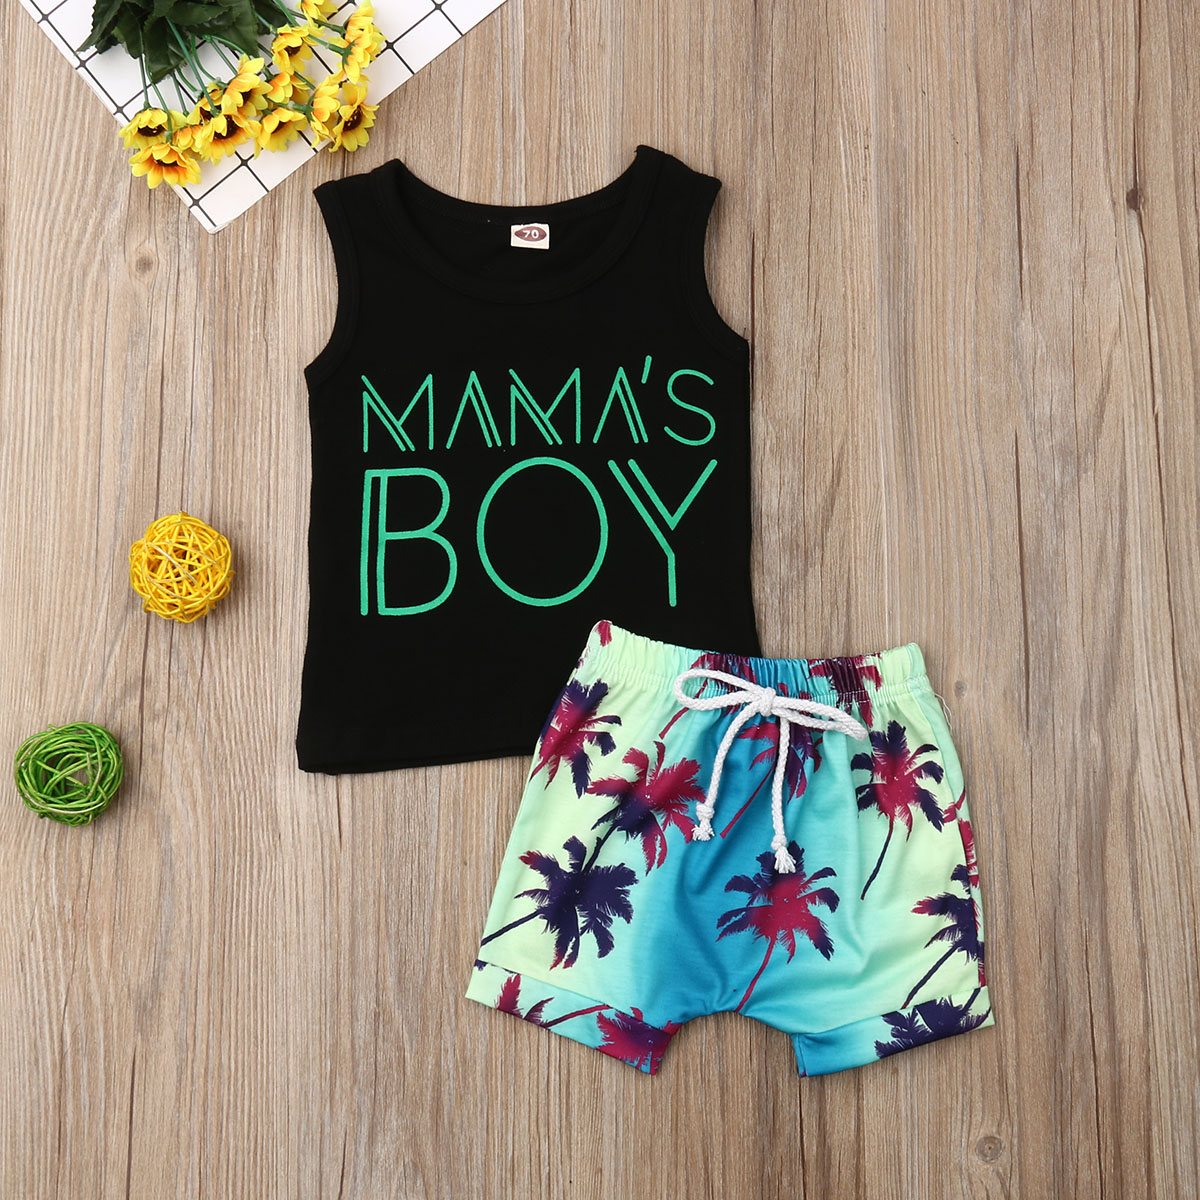 Pudcoco Summer Newborn Baby Boy Clothes Sleeveless Cotton Tops Vest Summer Beach Short Pants 2Pcs Outfits Casual Clothes Set